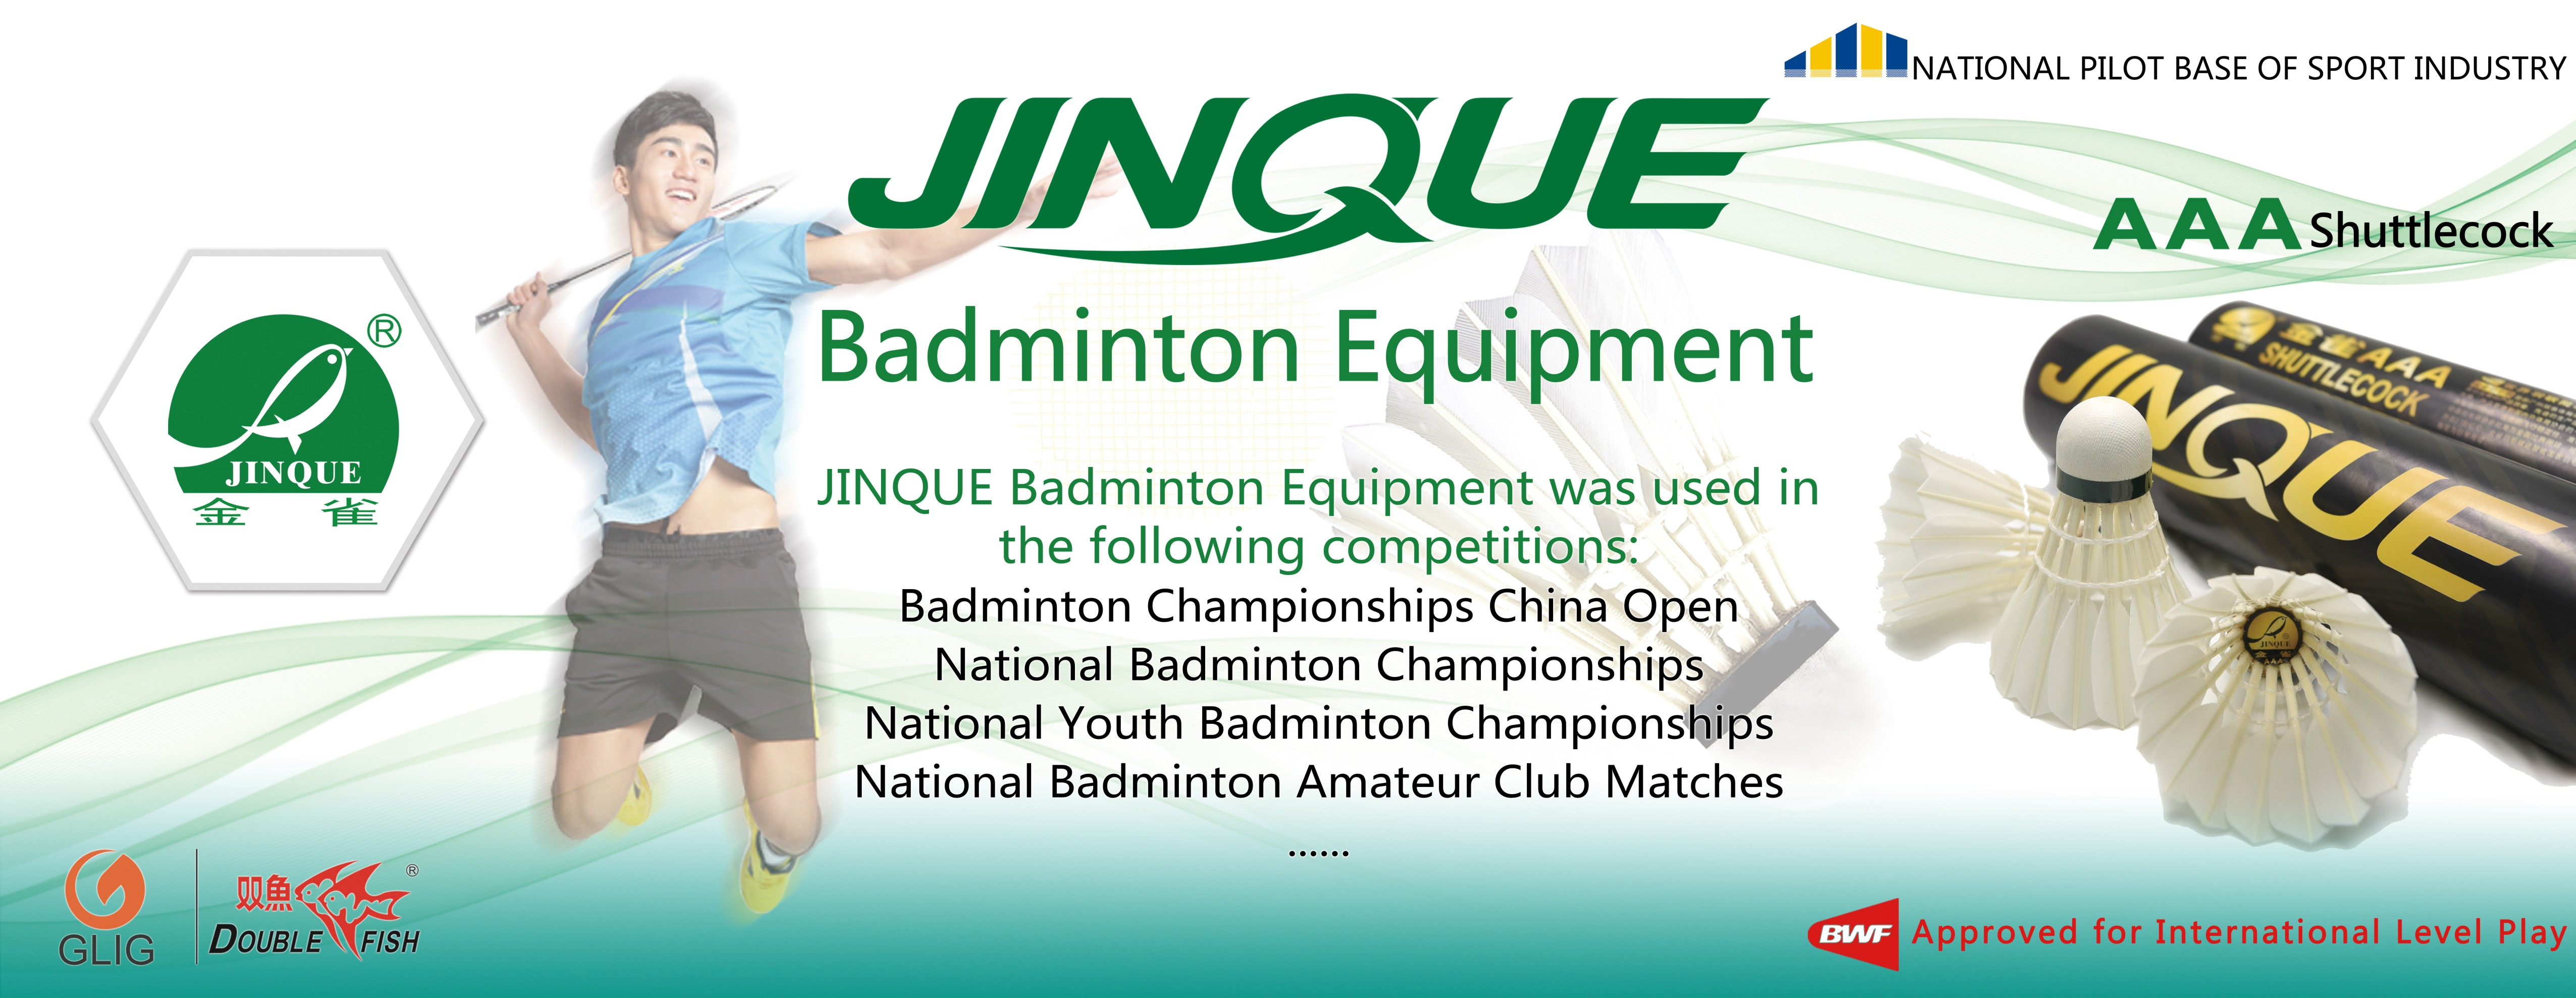 Jinque Badminton Equipment